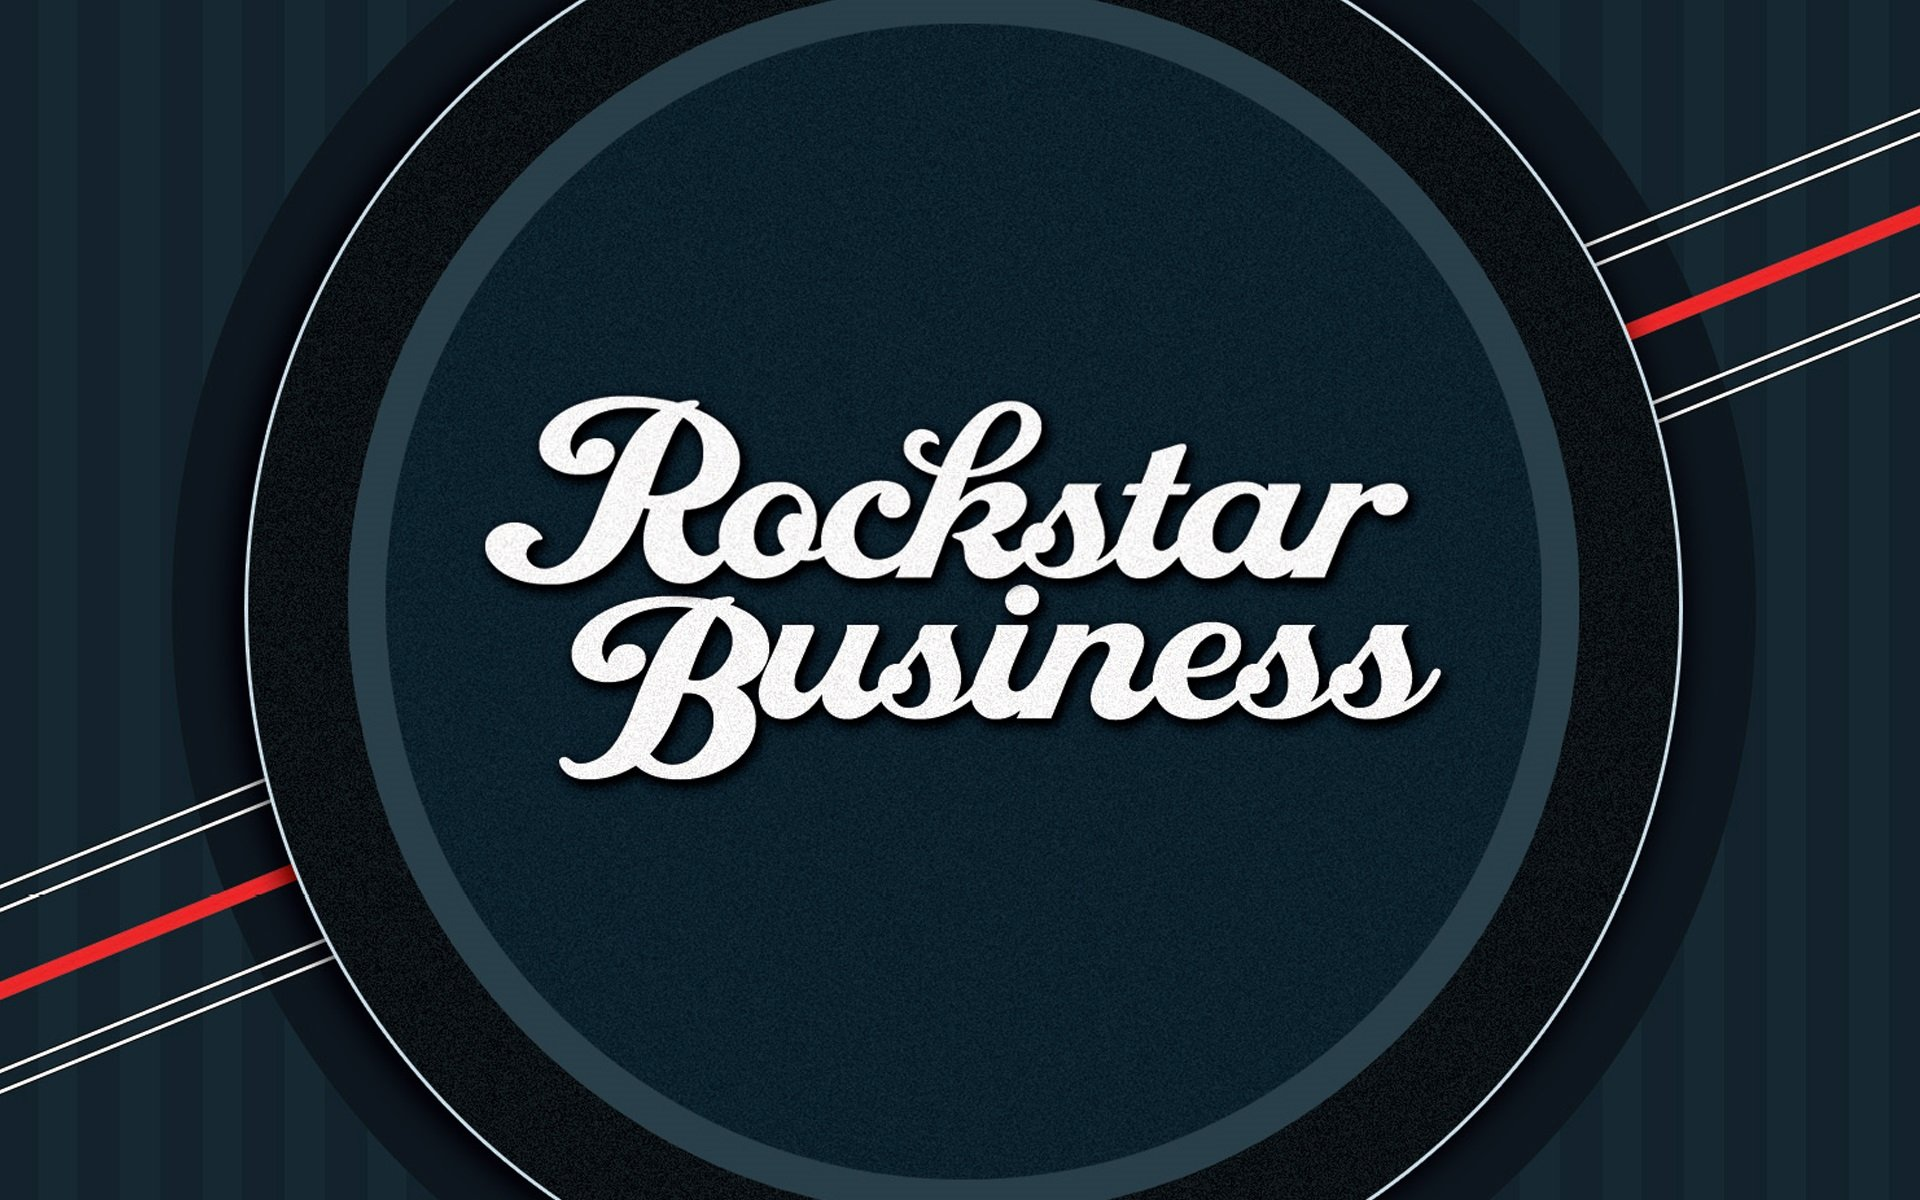 Rockstar Business Modeling